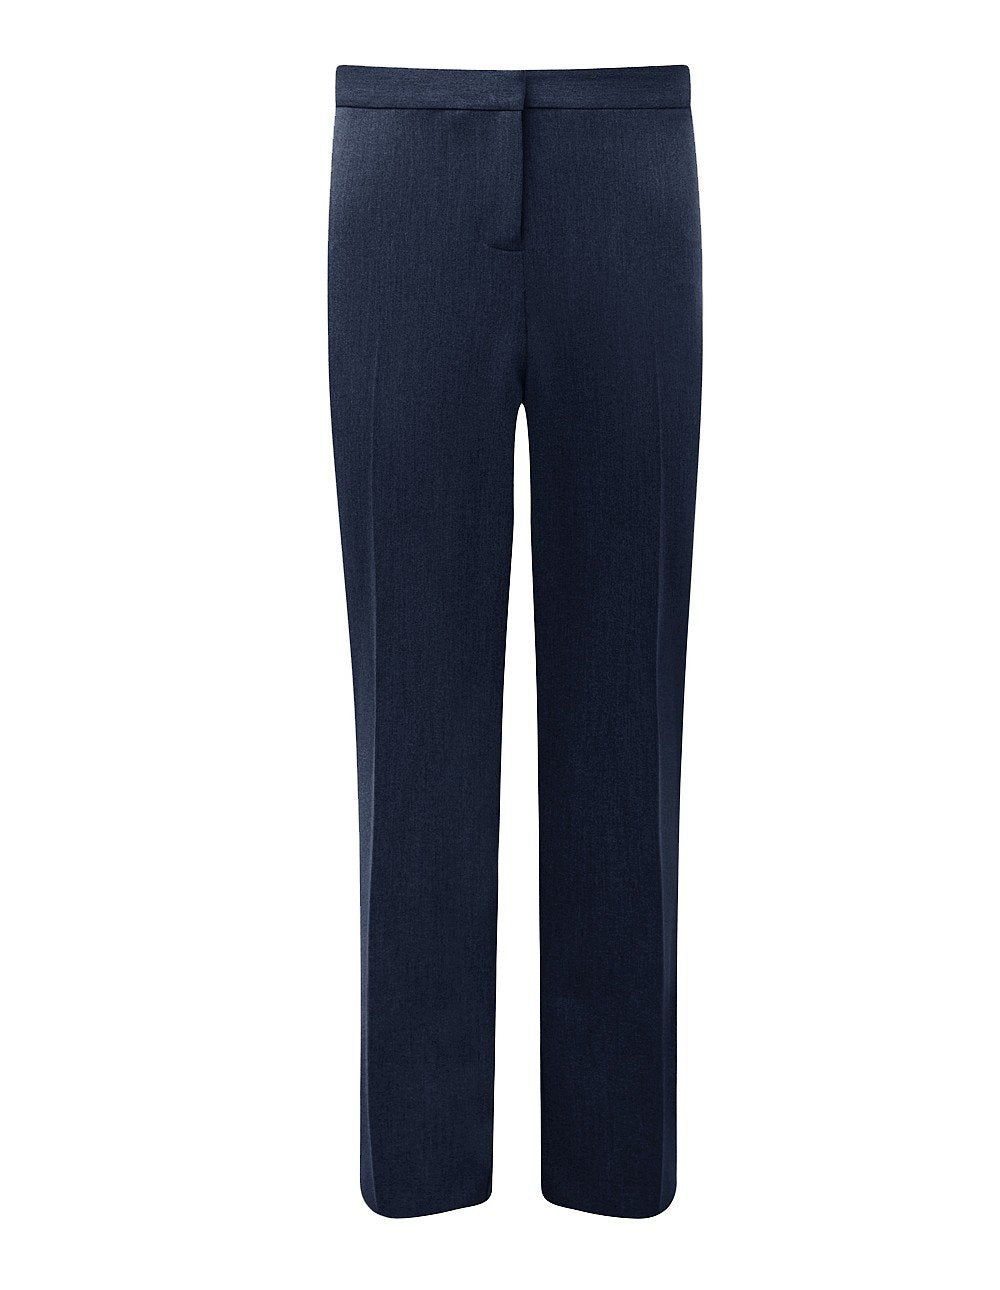 Trimley Girls Slim-fit Trousers (available in Black, Navy & Mid-Grey colours) - Schoolwear Centres | School Uniform Centres